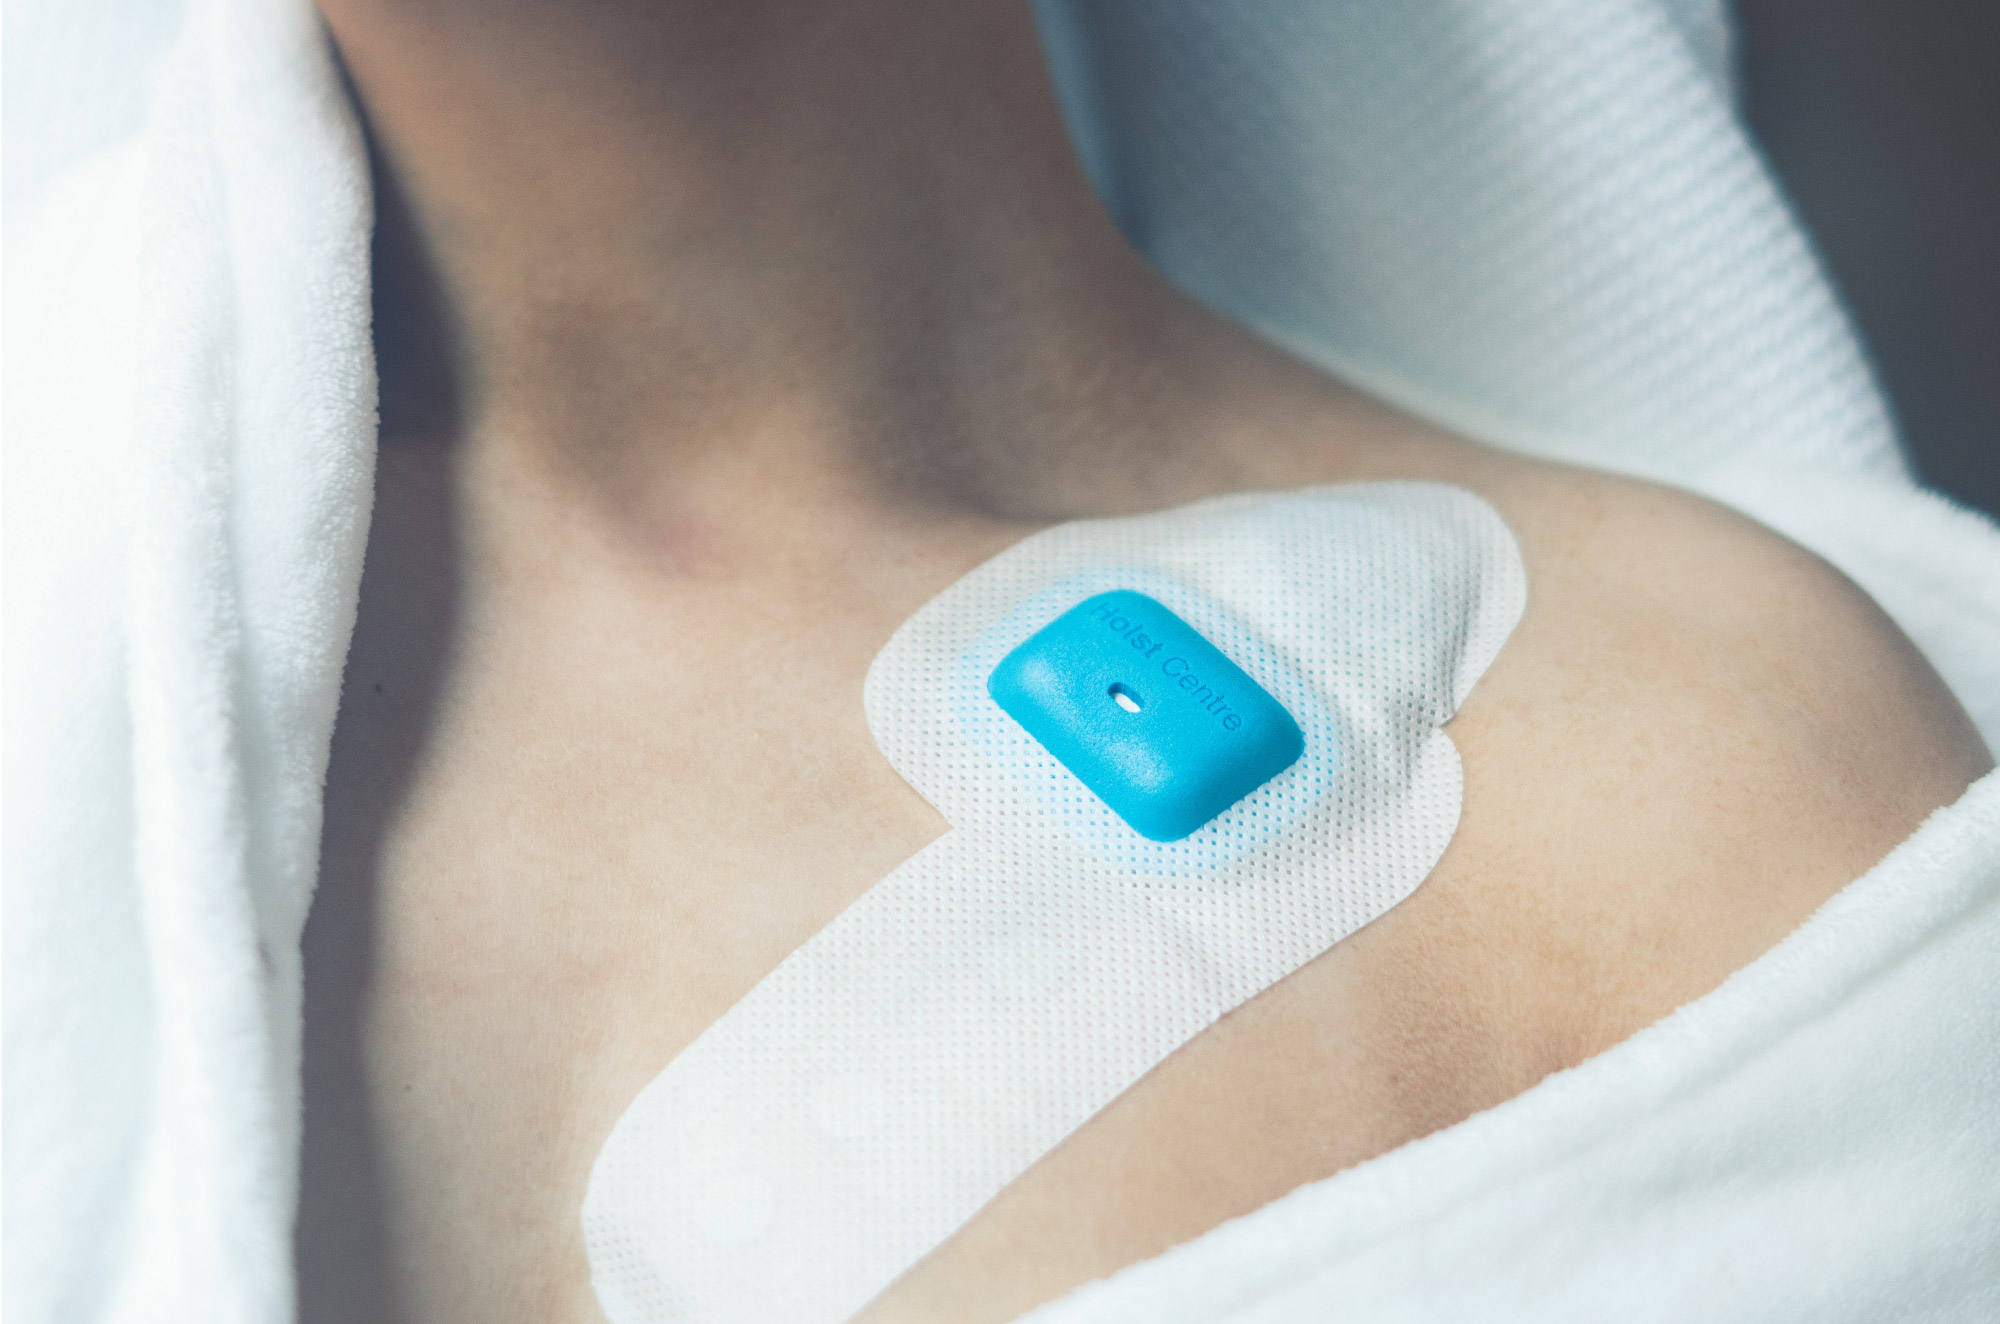 vital sign monitoring device